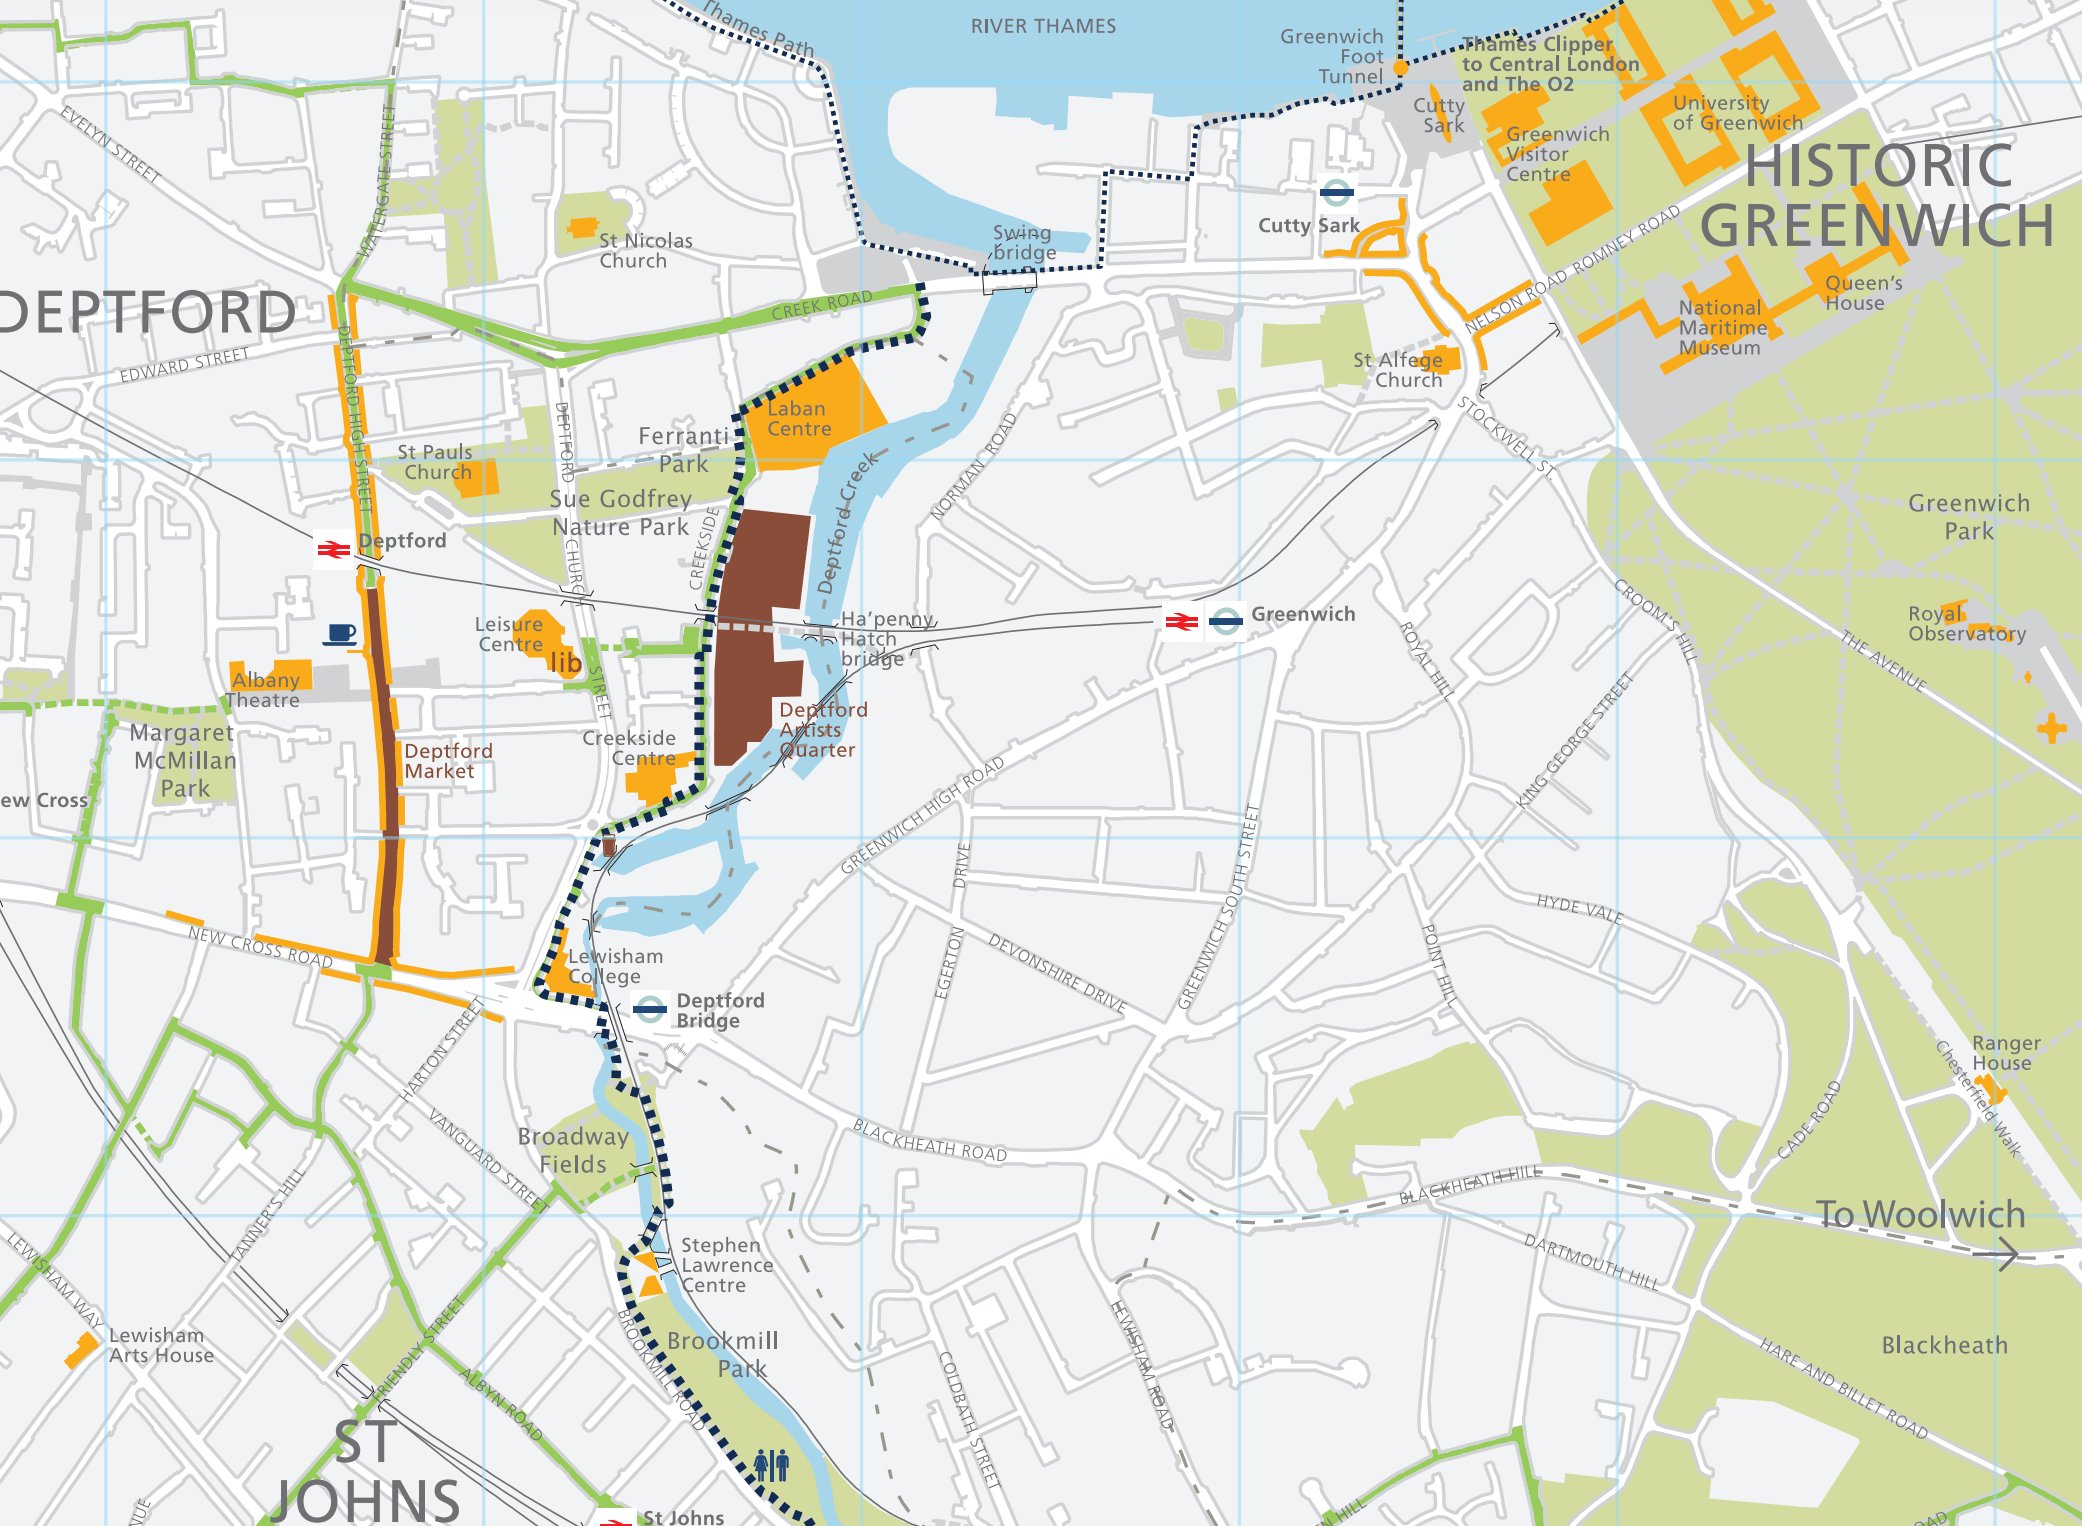 Waterlink Way cycle route